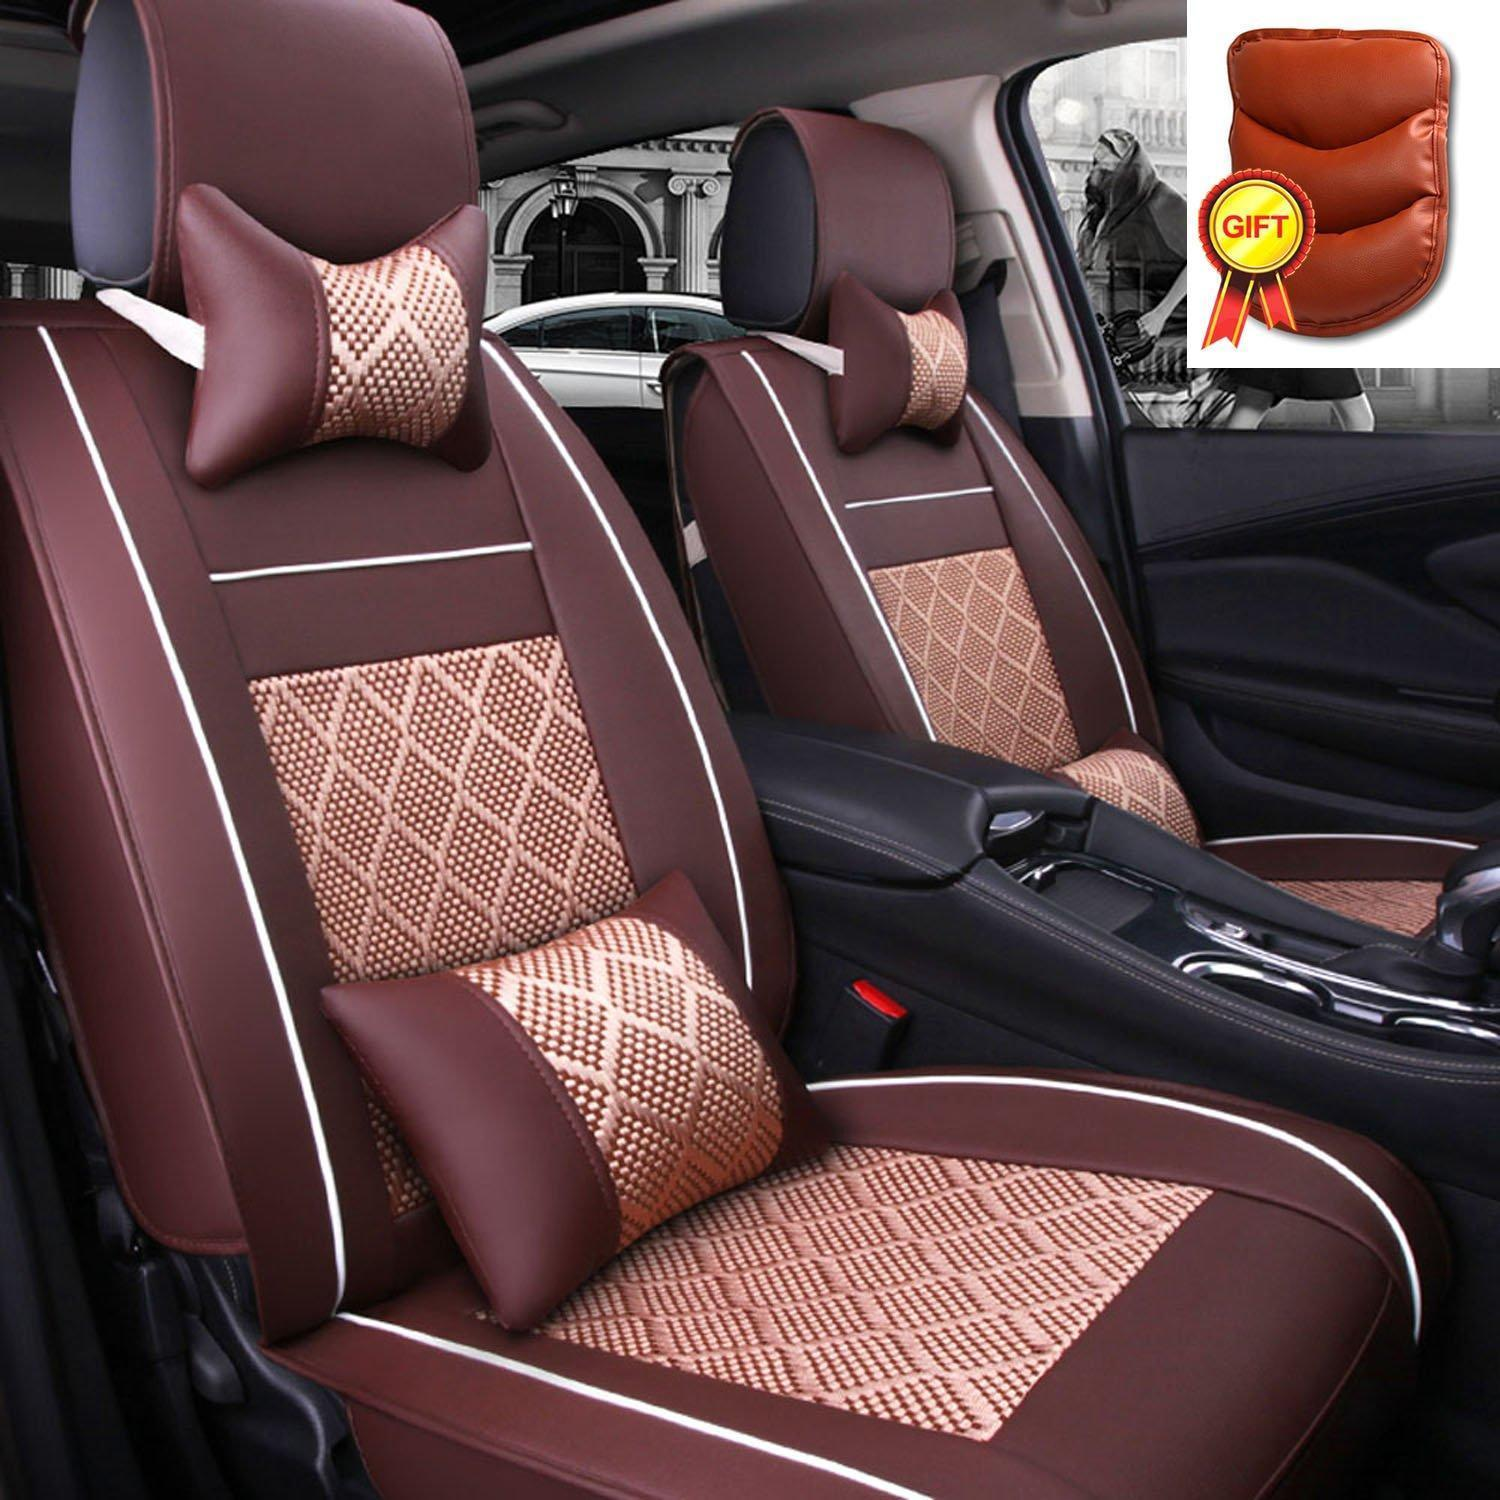 Auto Seat Cushion Compatible 5 Seats for Summer